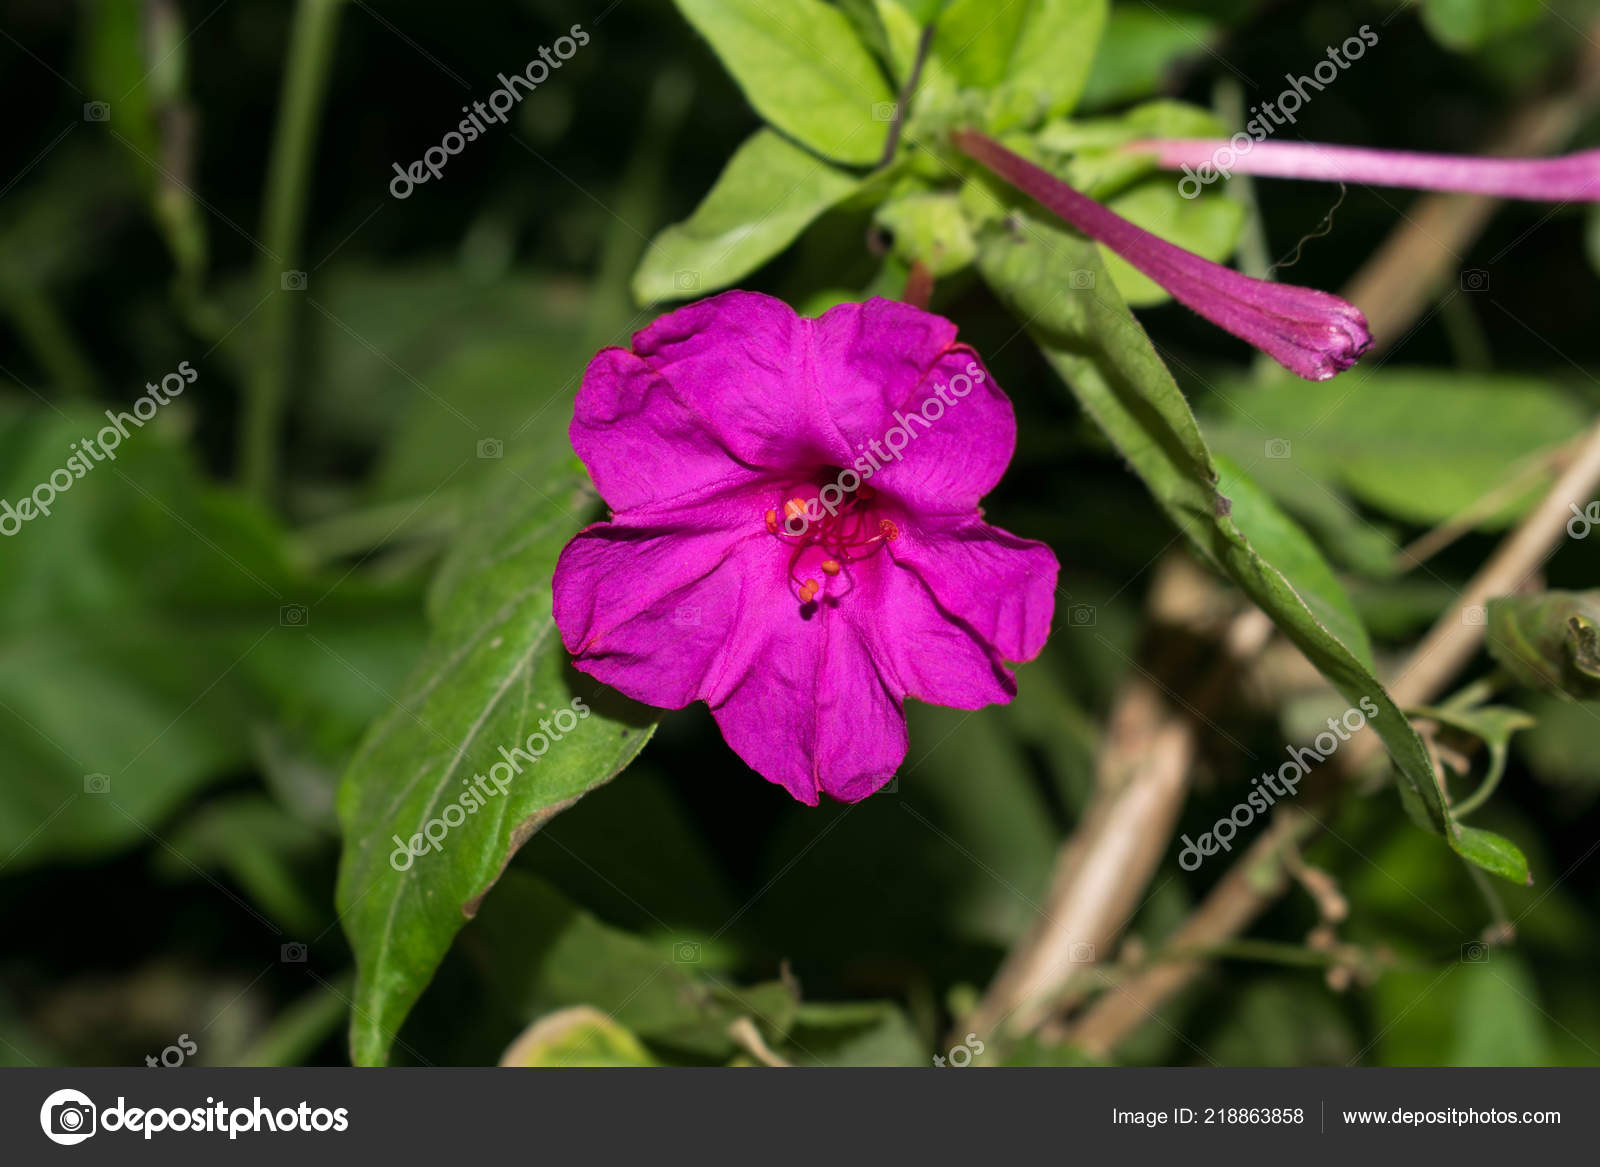 Petunia Flower Different Colors Garden Plant Photoshop Design